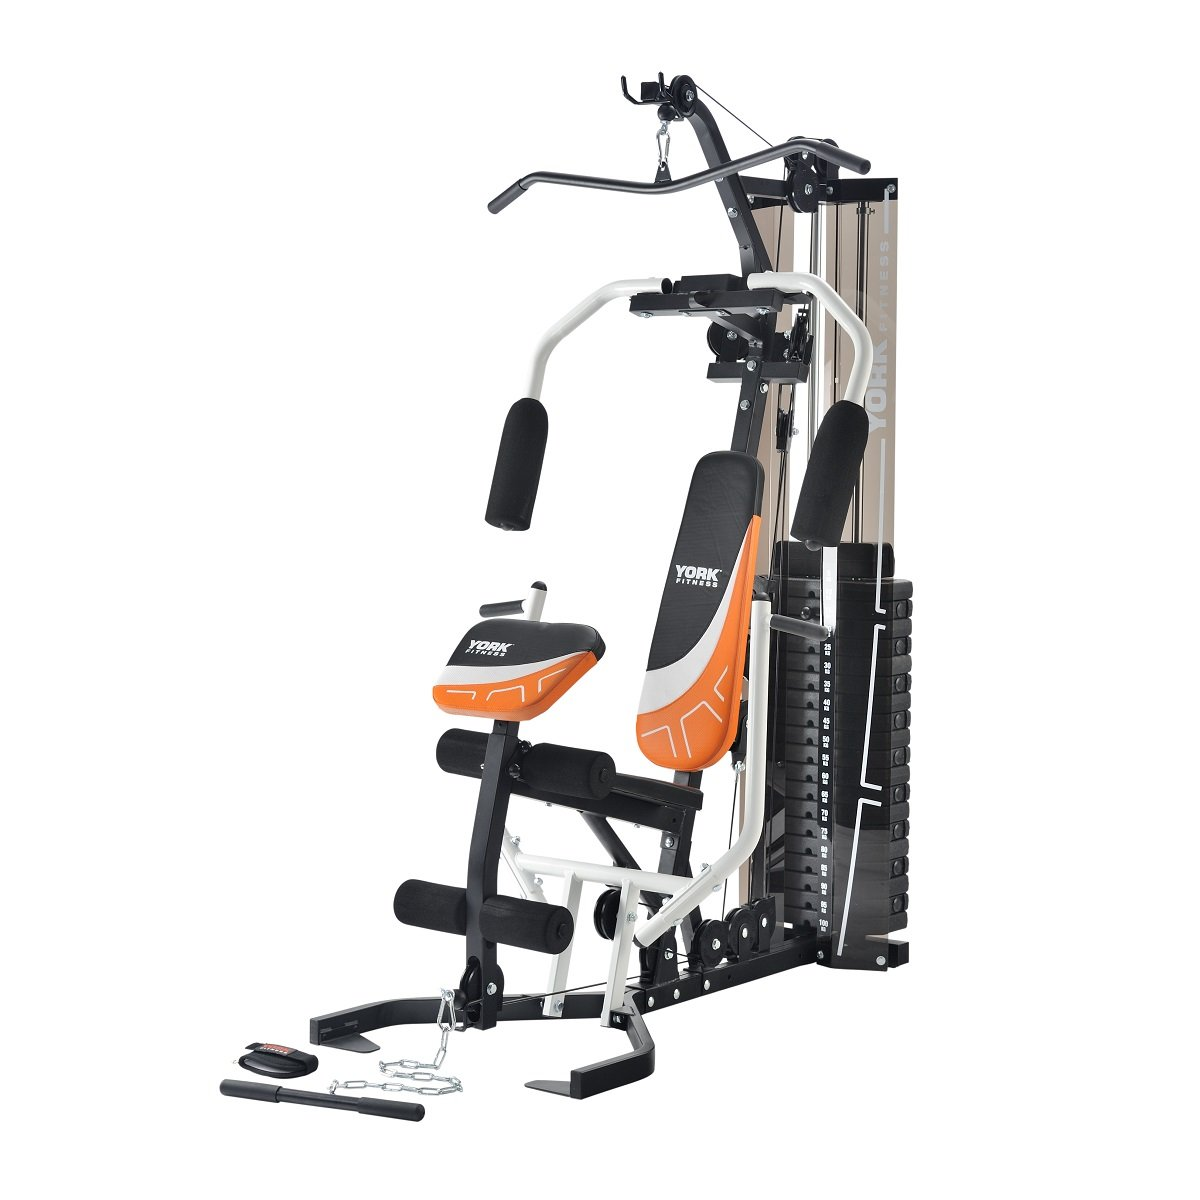 Home Exercise Equipment Price: Review & Best Price Guide